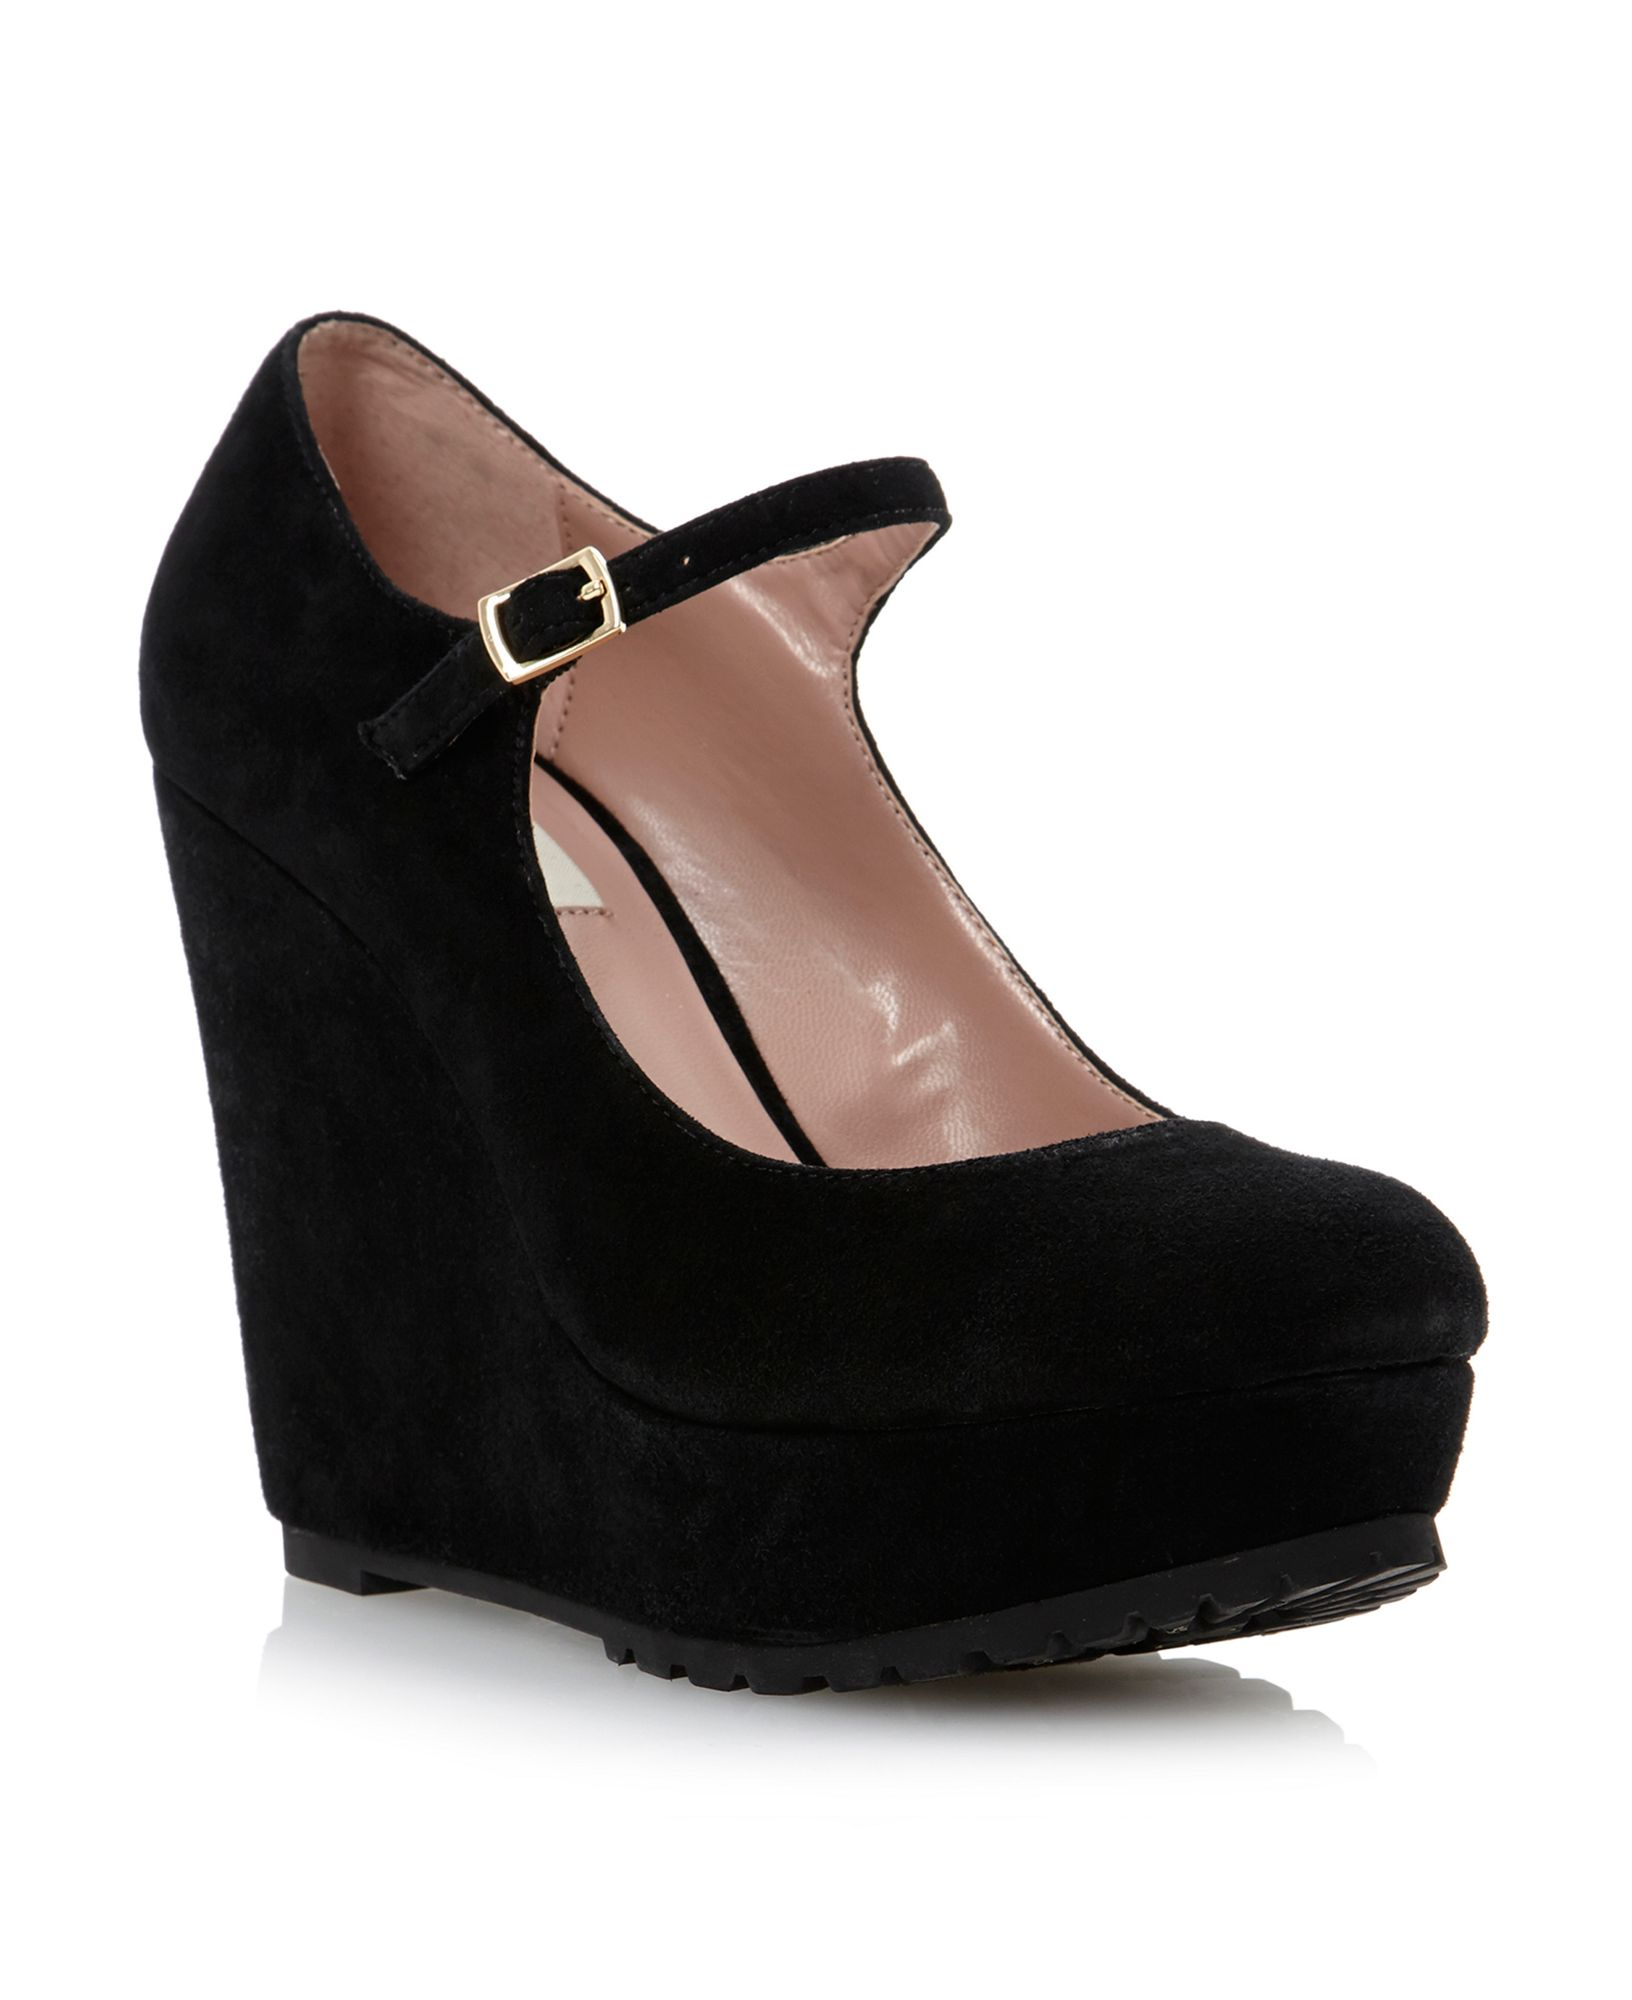 Dune Avengecleated Sole Platform Wedge Shoes in Black | Lyst